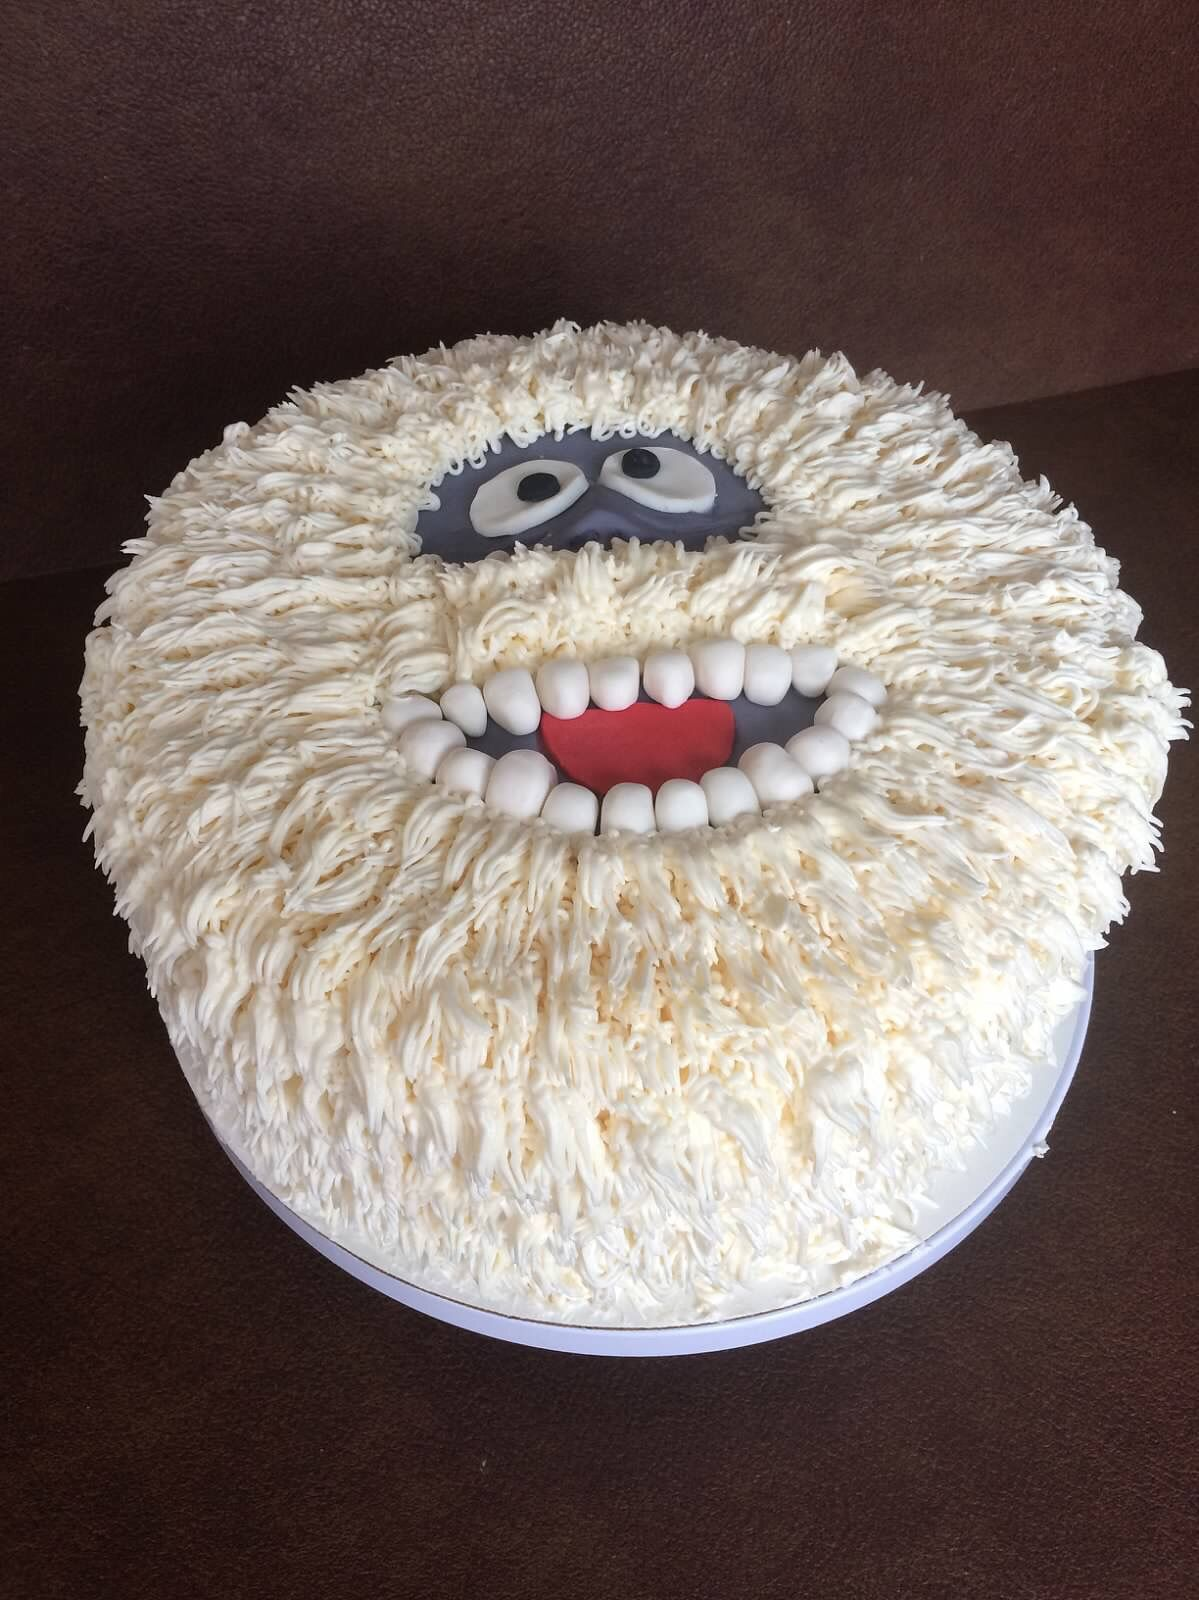 Bumble The Abominable Snowman Cake Super Fun